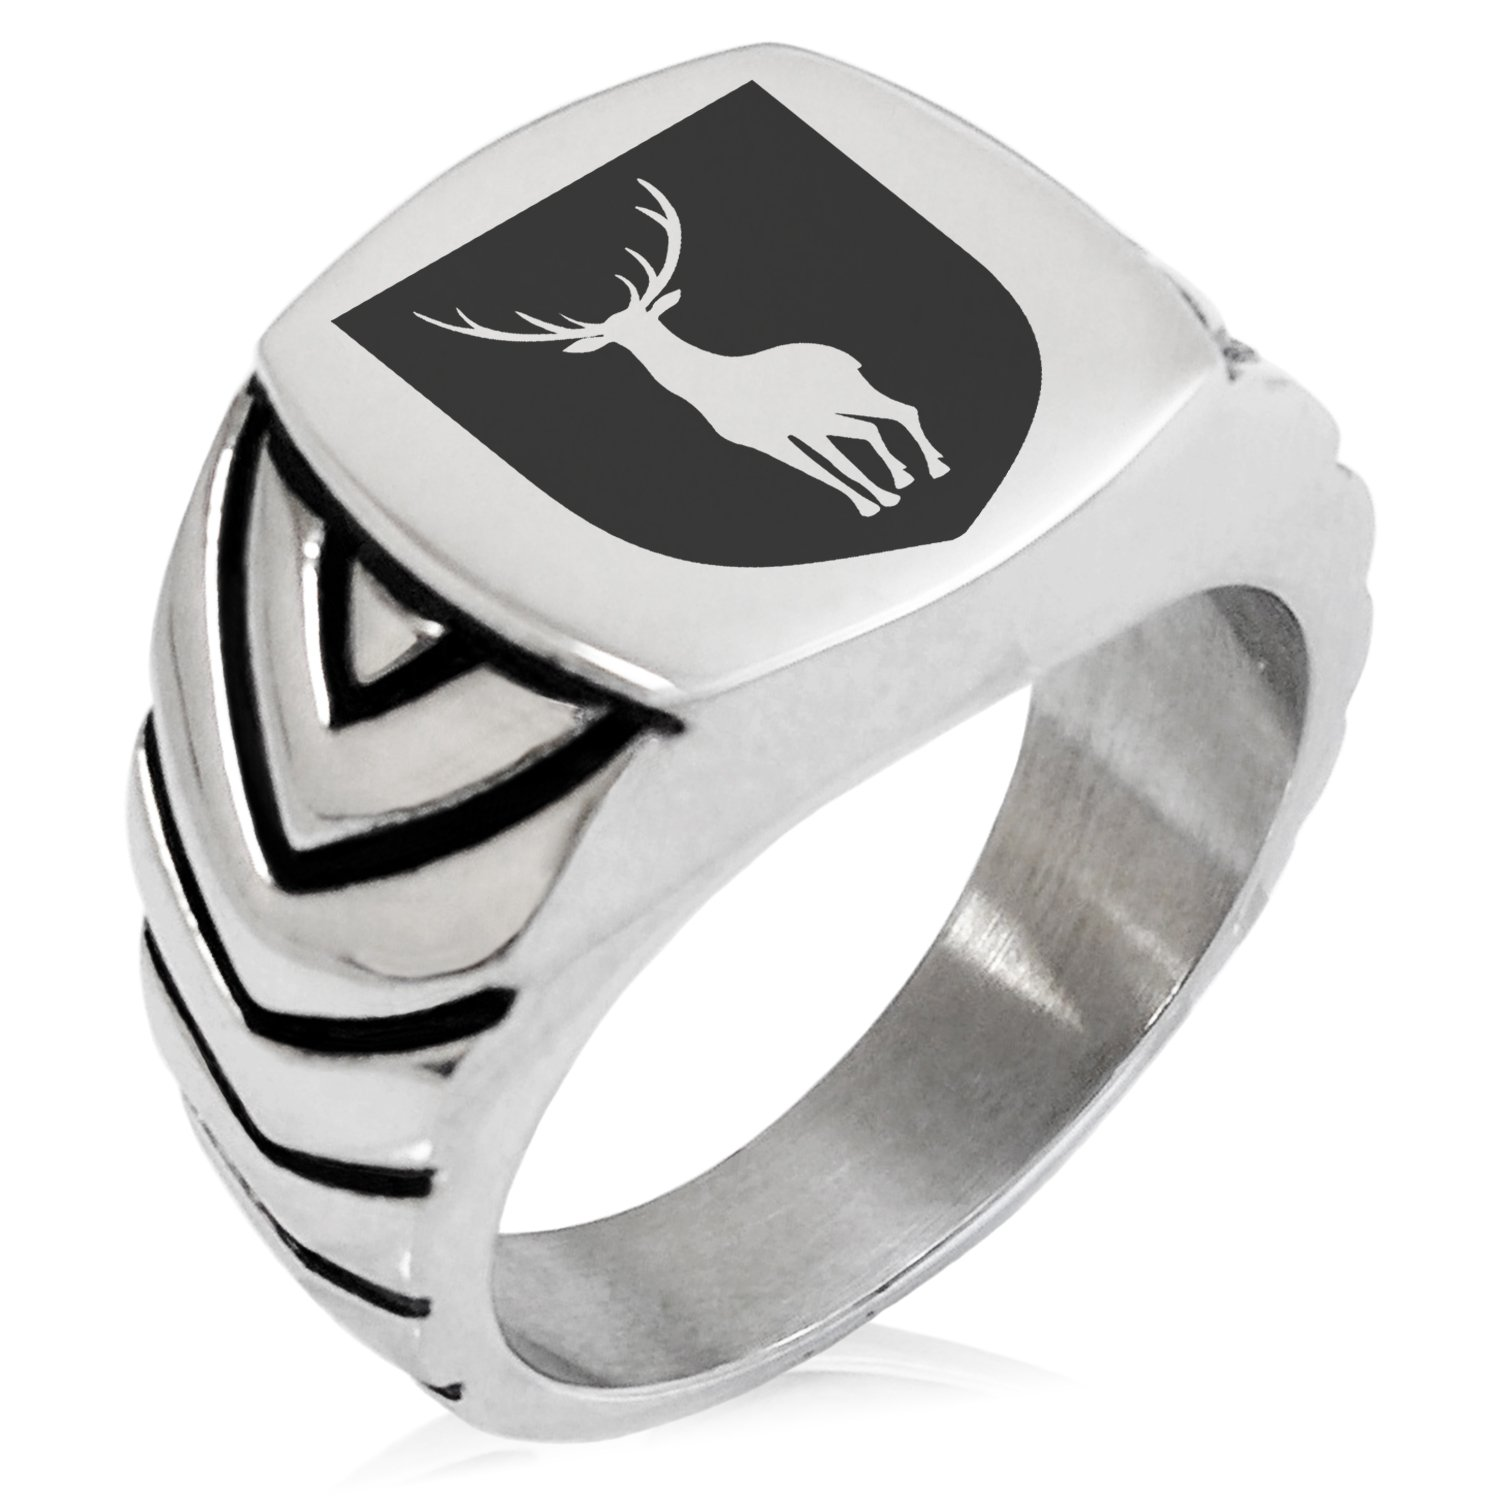 Two-Tone Stainless Steel Stag Purity Coat of Arms Shield Engraved Chevron Pattern Biker Style Polished Ring, Size 11